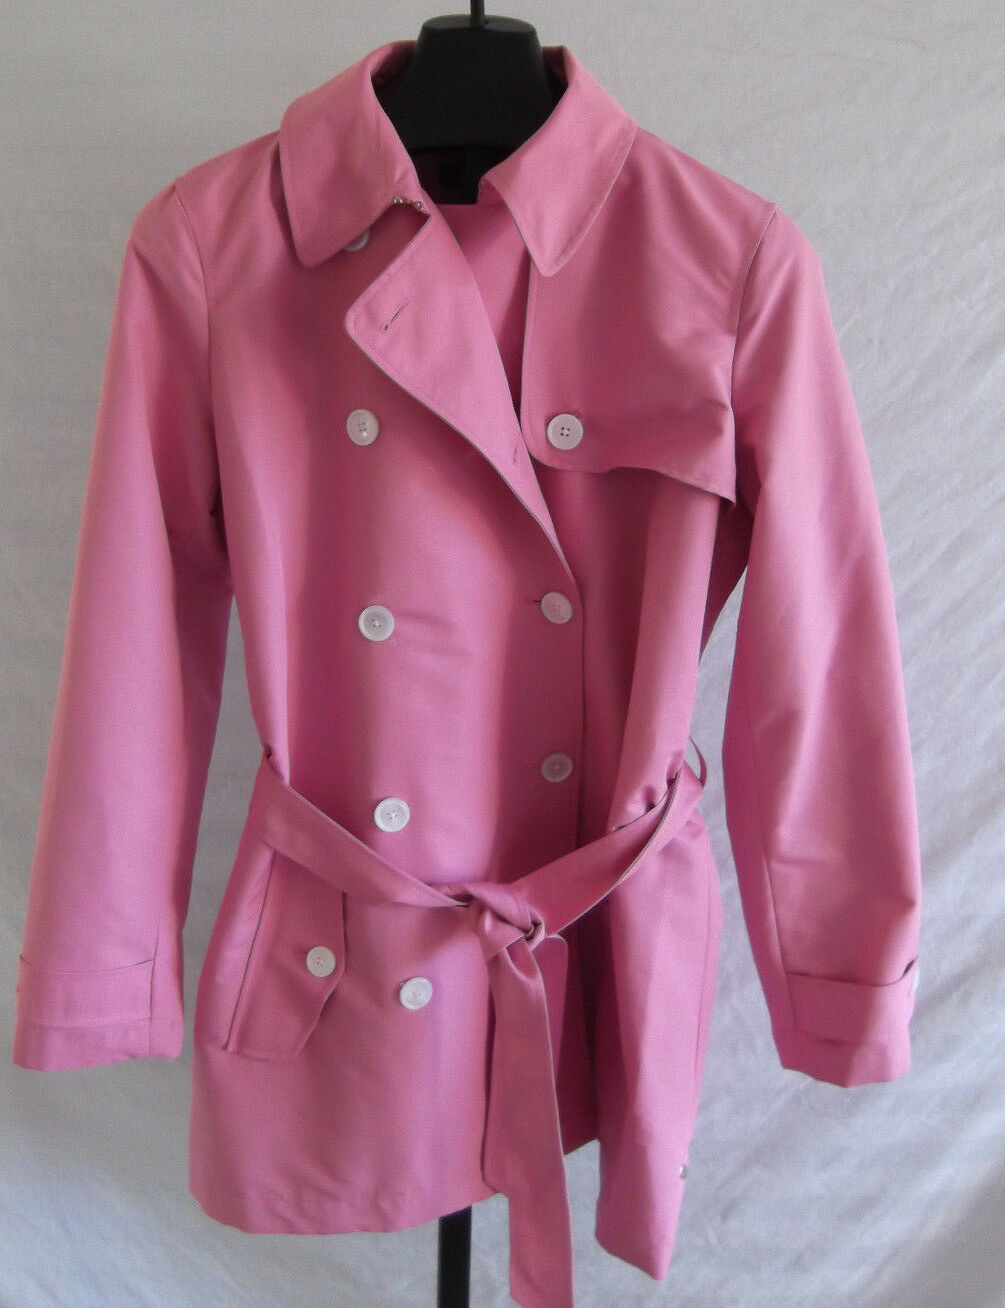 NWT Lauren Ralph Lauren Pink Water Resistant Trench Raincoat Size L DB breasted